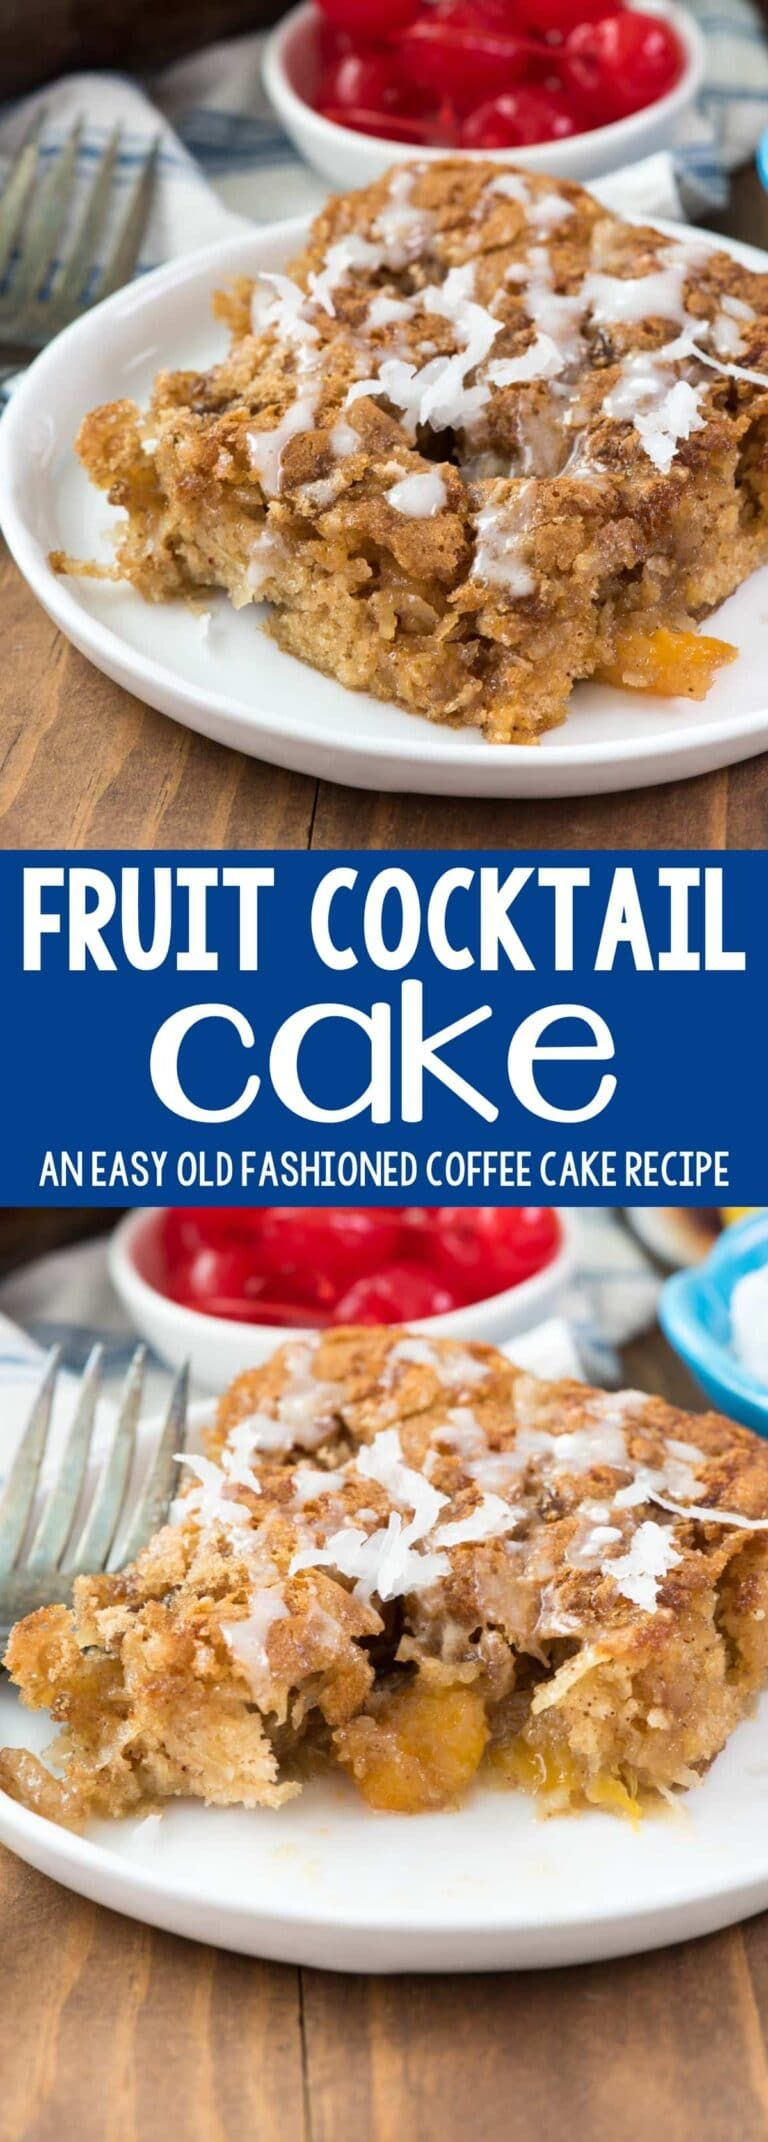 Fruit cocktail cake crazy for crust recipe in 2020